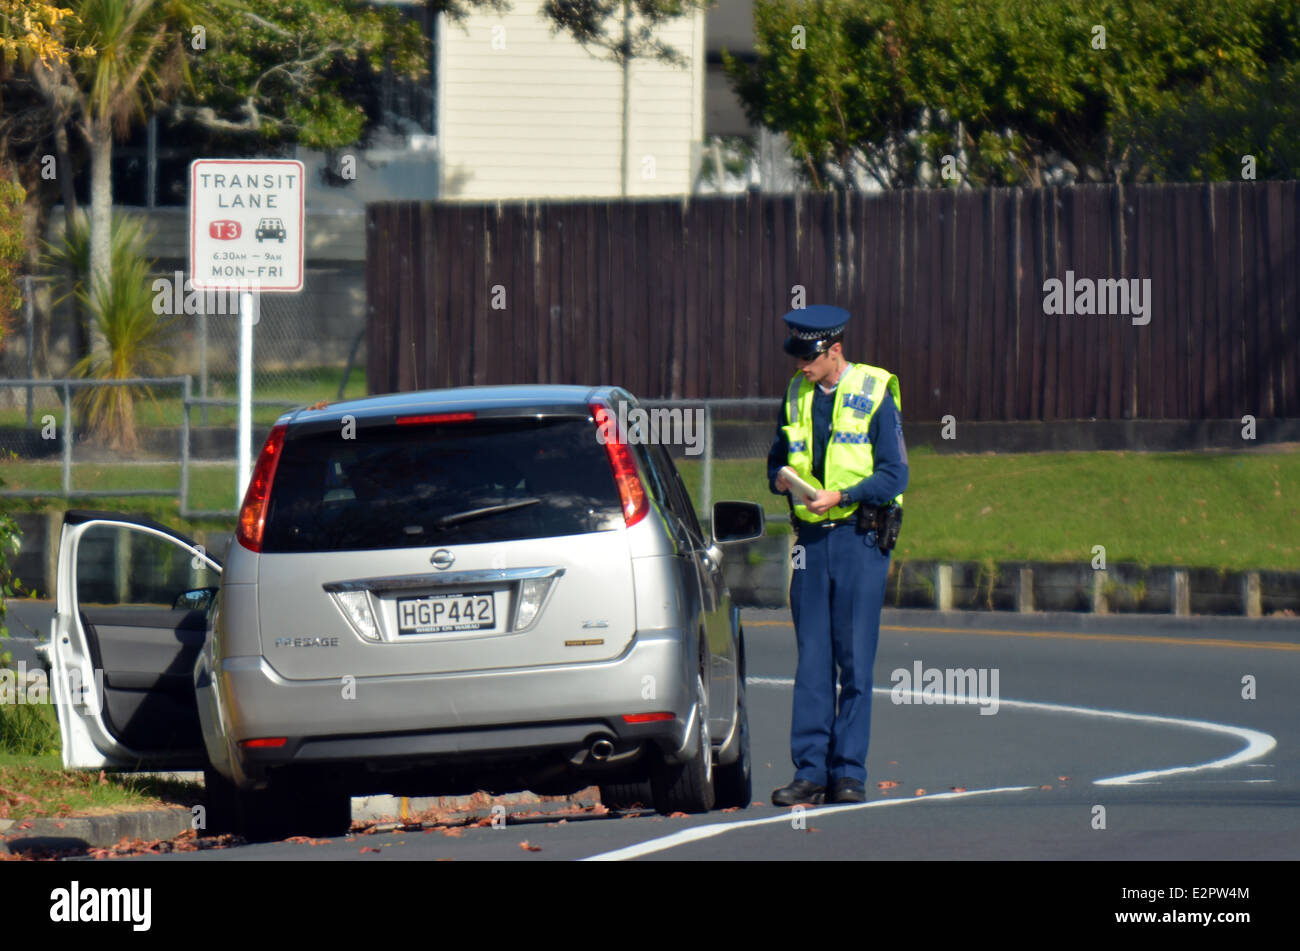 Traffic Police officer writing a traffic citation. - Stock Image